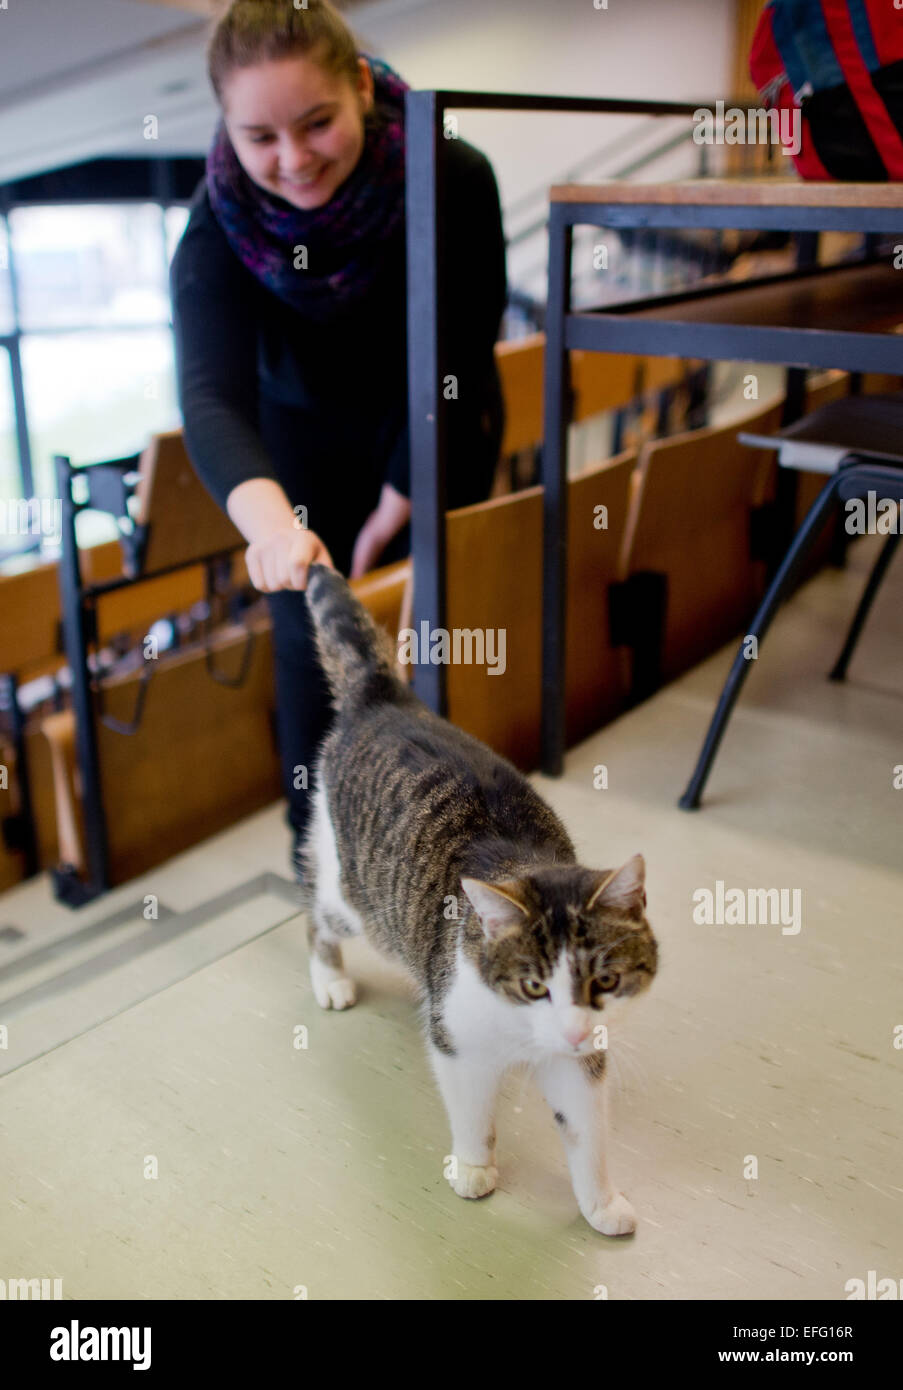 Hildesheim, Germany. 02nd Feb, 2015. Cat 'Fraeulein Sinner' walks past student Anna (24)in a lecture hall at the Stock Photo